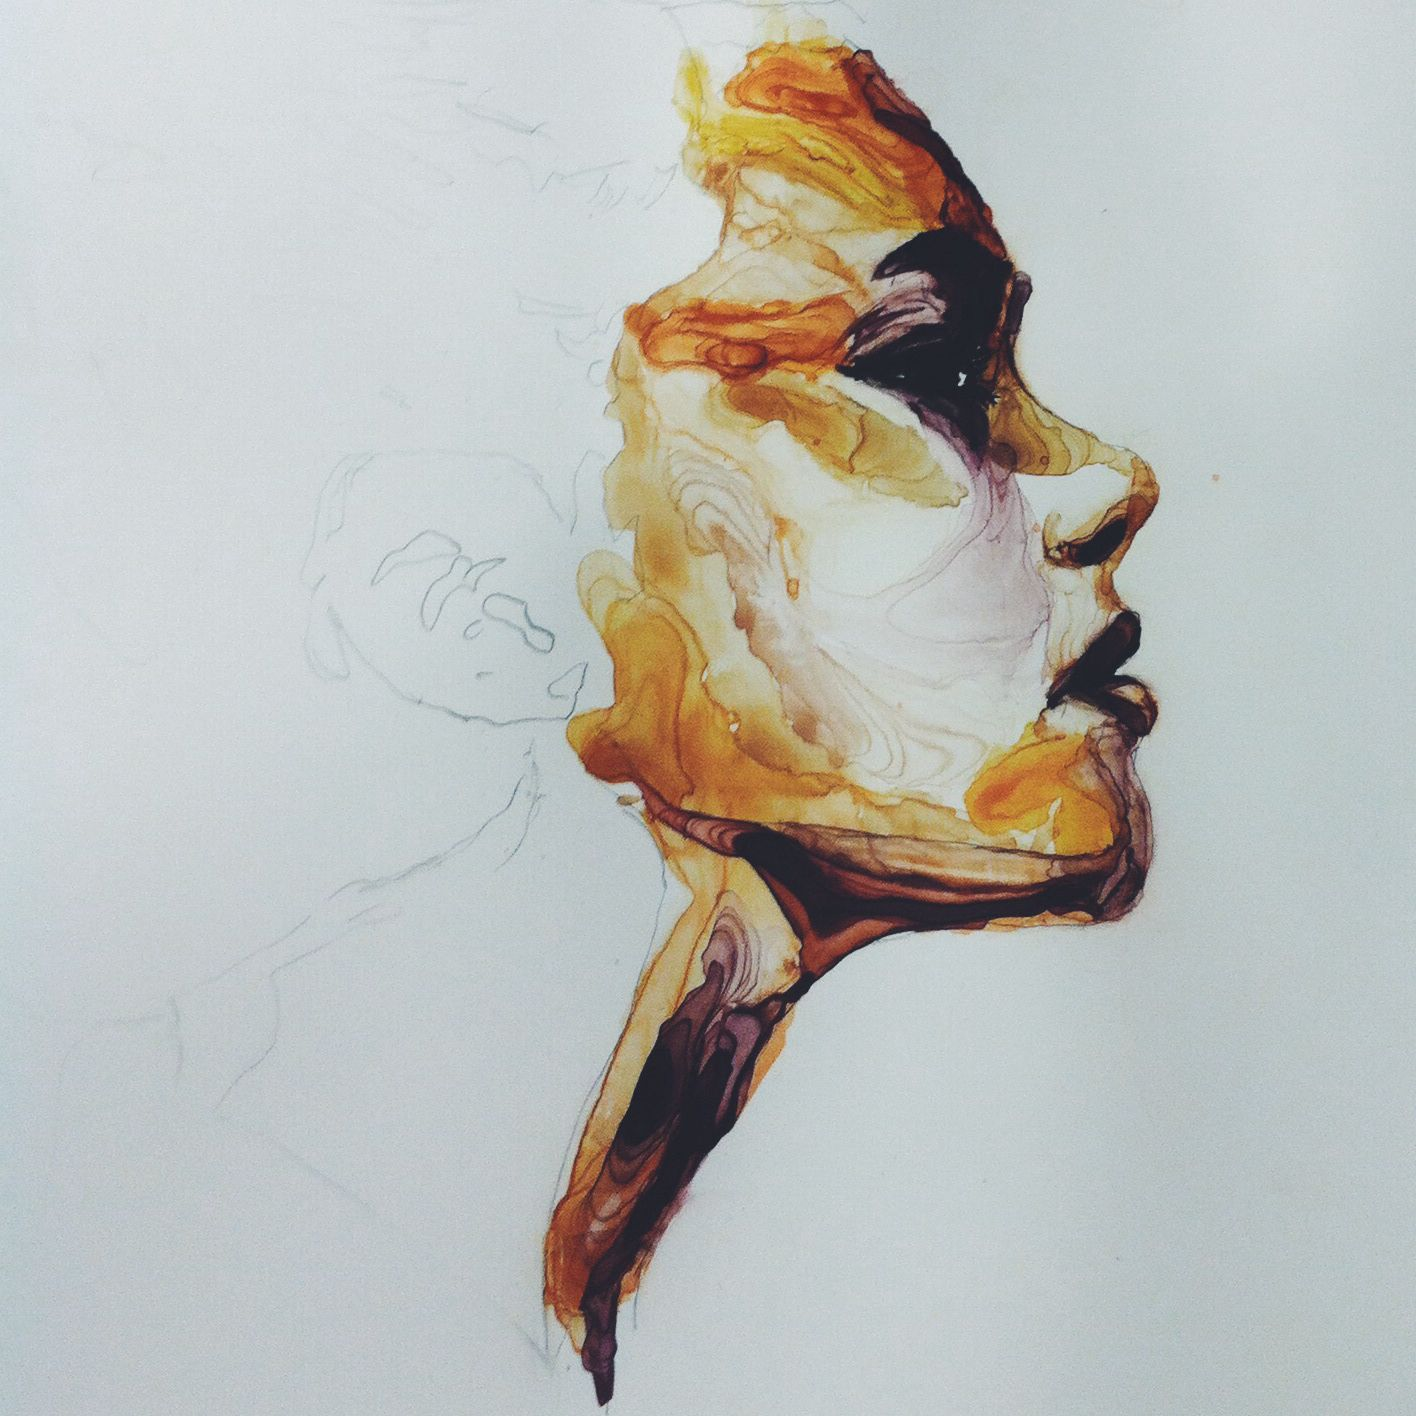 Profile portrait watercolor on Yupo - not finished